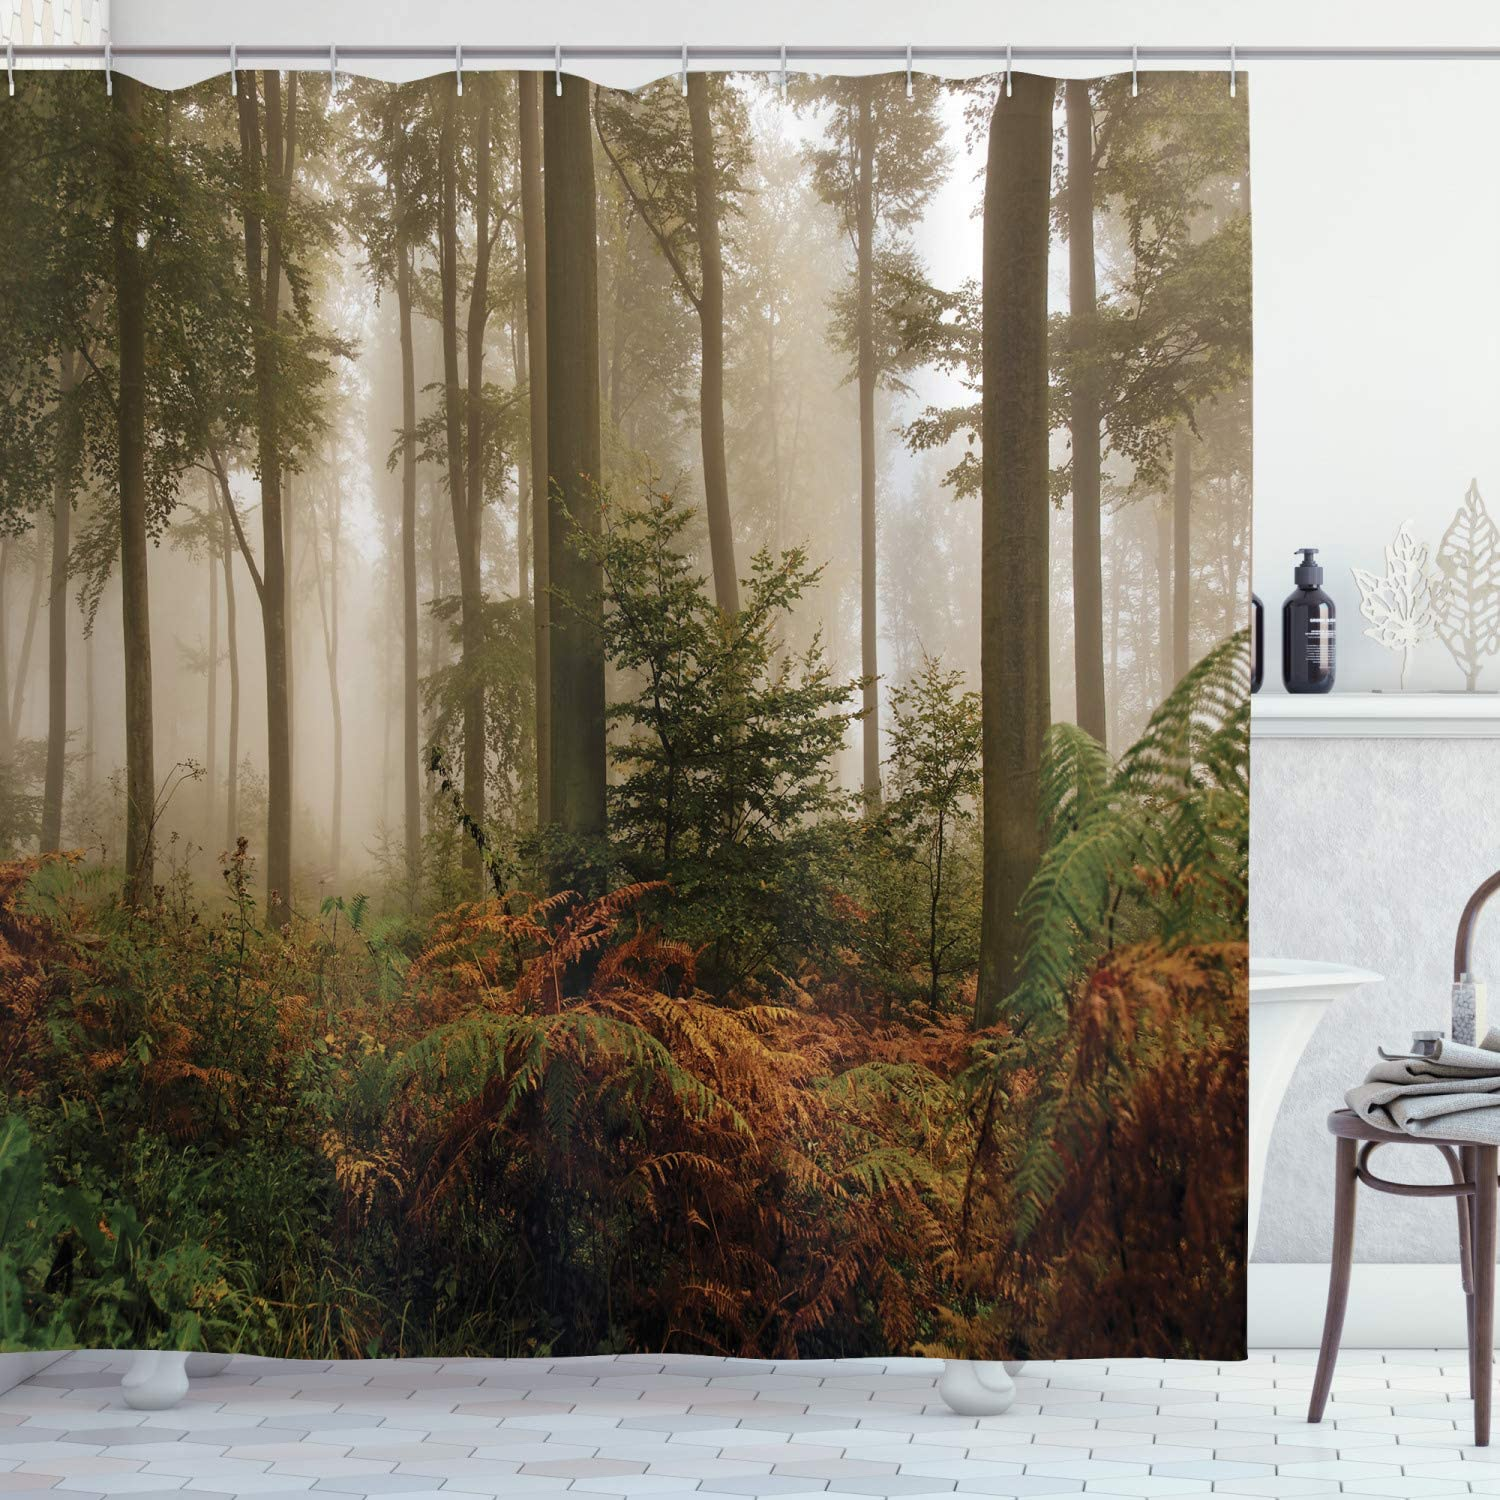 Ambesonne Forest Shower Curtain, Mystic Dark Fog Atmosphere Deep in The Forest Woodland Nobody Silence Image, Cloth Fabric Bathroom Decor Set with Hooks, 70